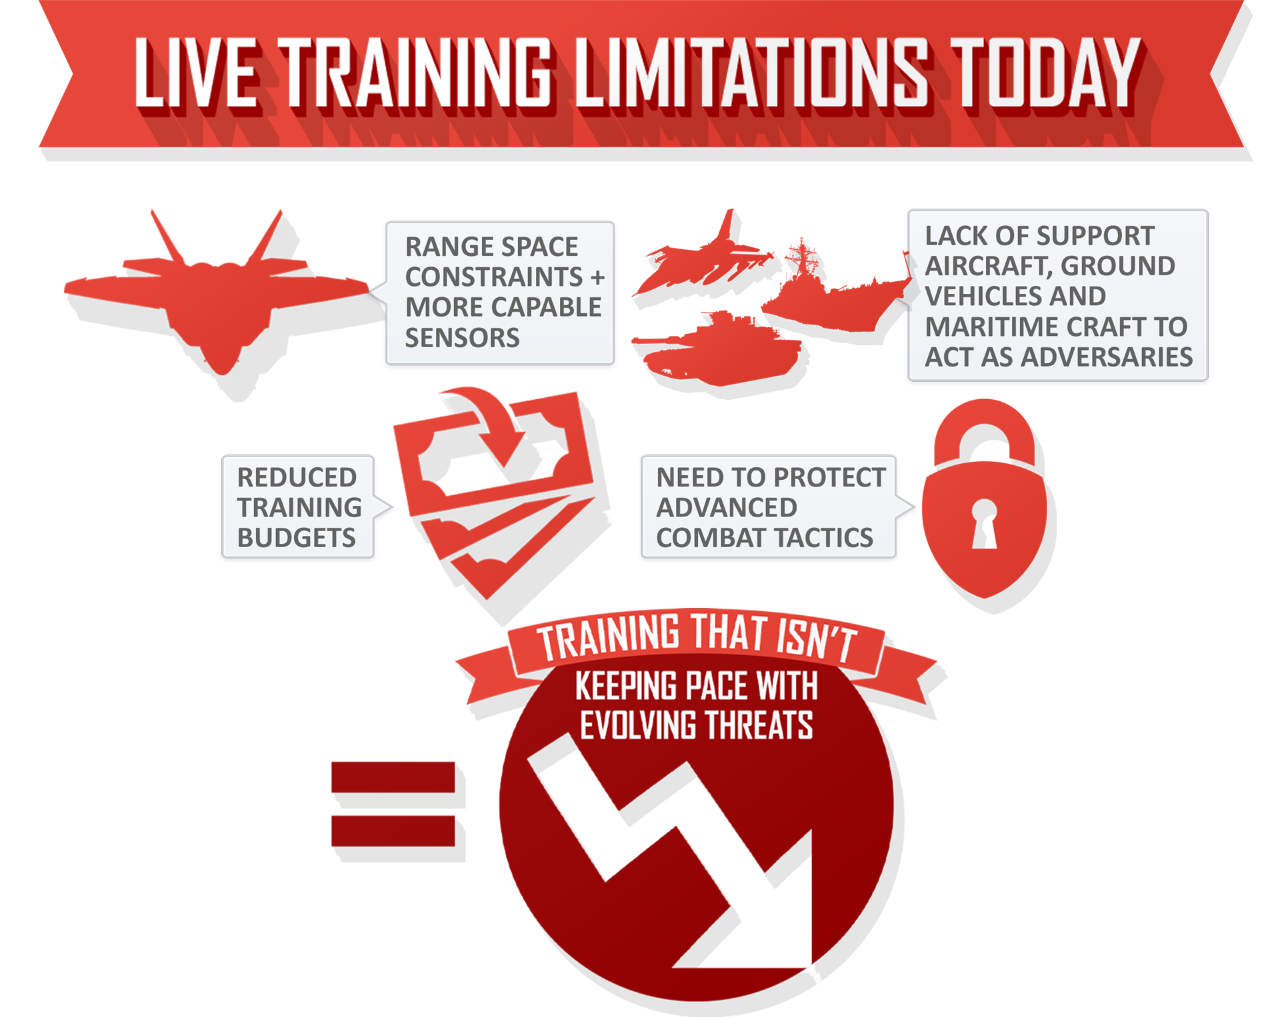 Live Training Limitations Today